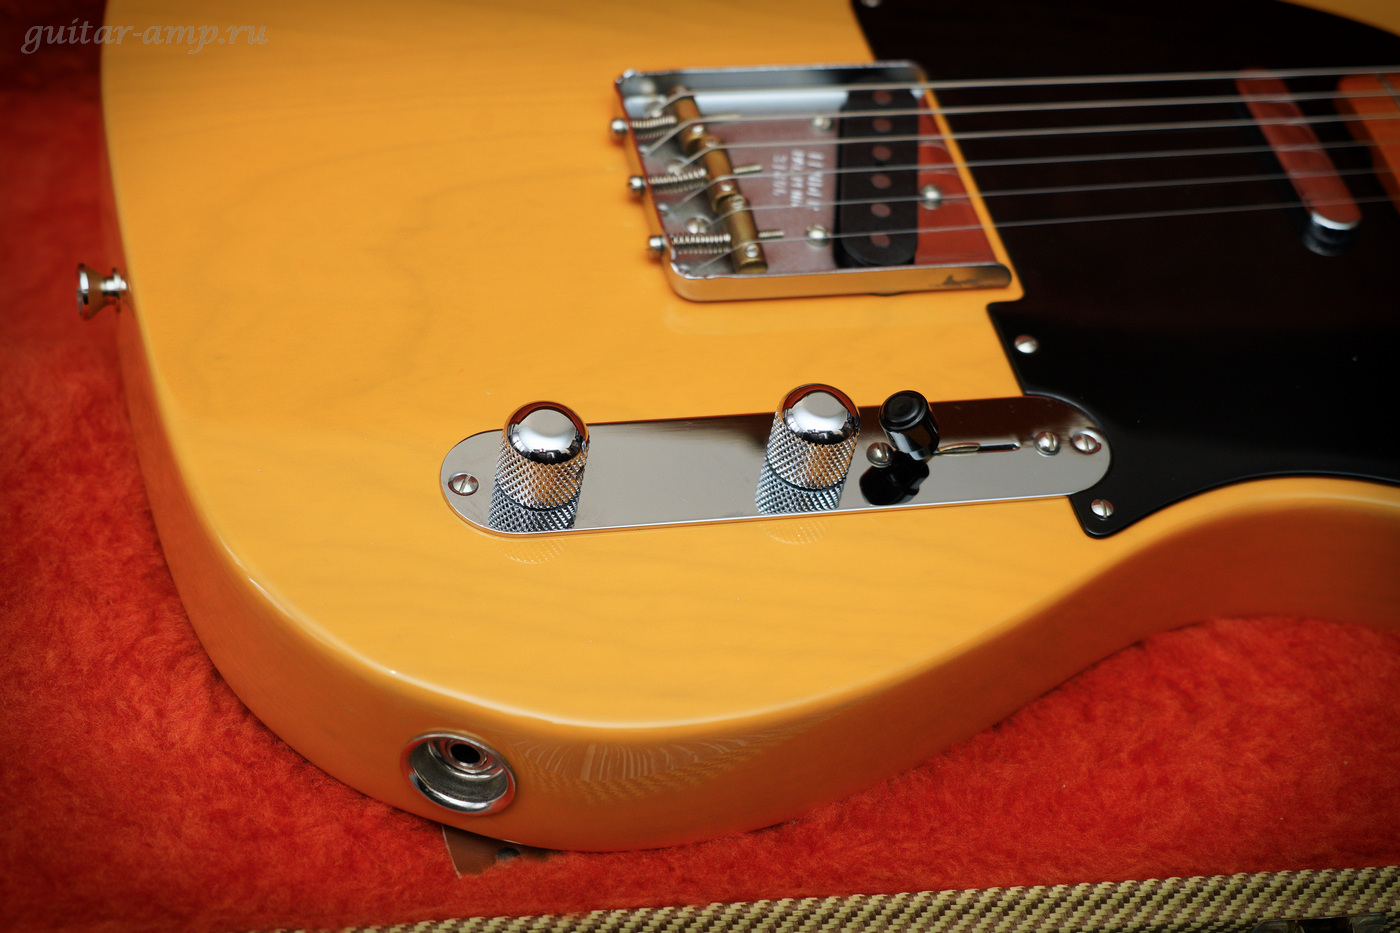 Fender American Vintage Telecaster 1952 Reissue Butterscotch Blonde All Original 1998 18_garx1400.jpg